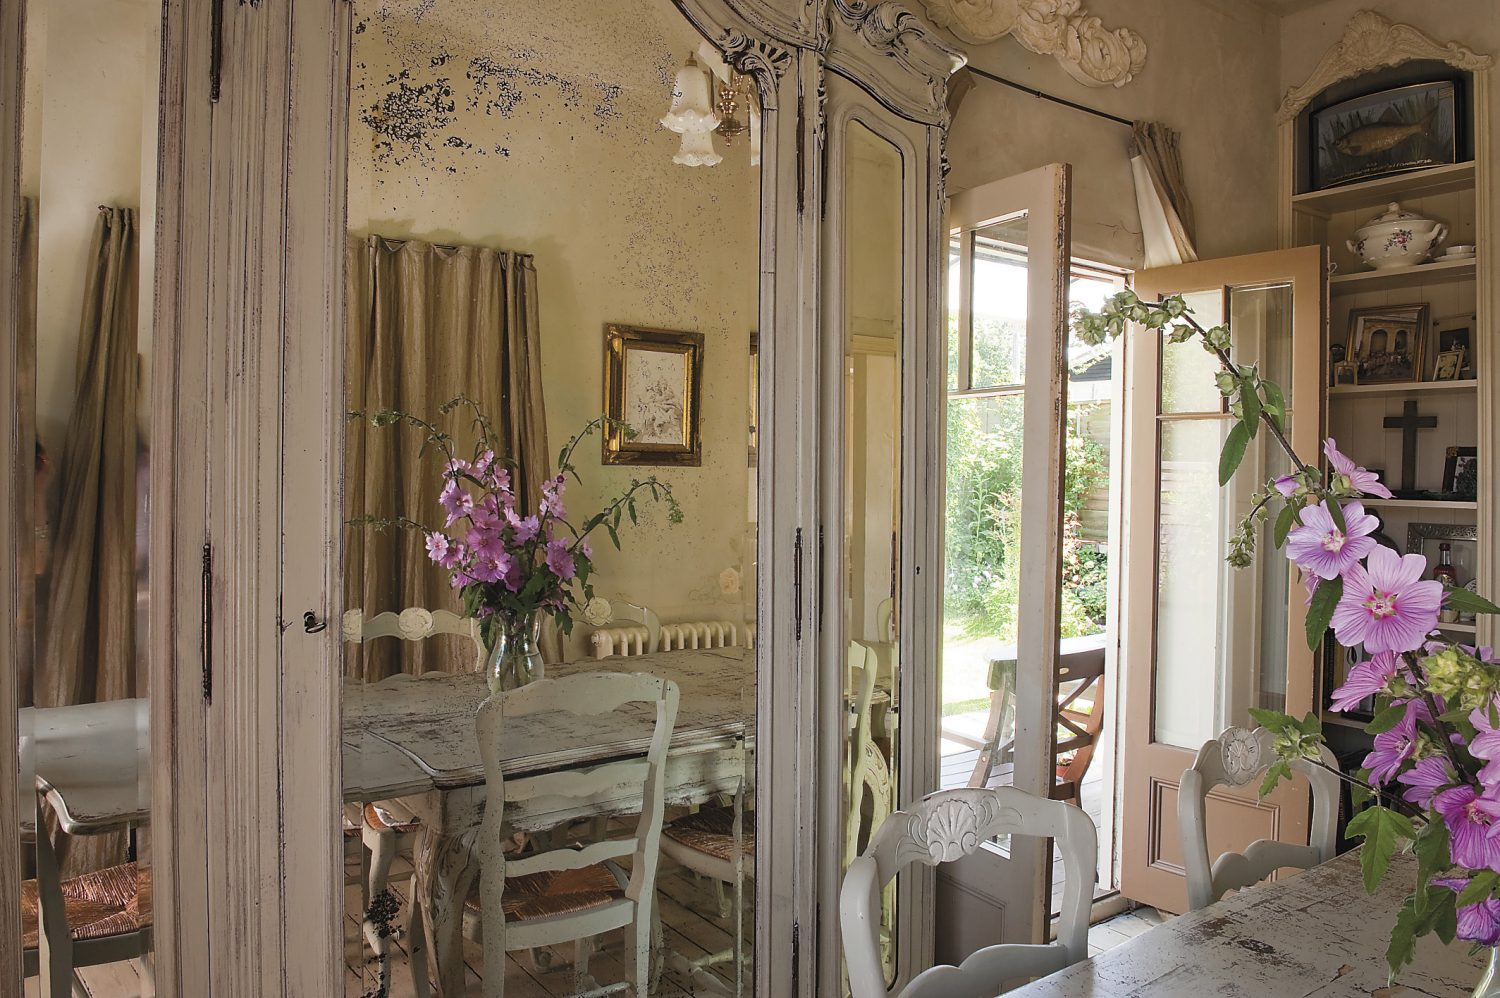 Vickie bought the rustic painted dining table, dressed with fresh hollyhocks from the garden, from a local antiques dealer, unaware that it had belonged to the house's previous occupants!